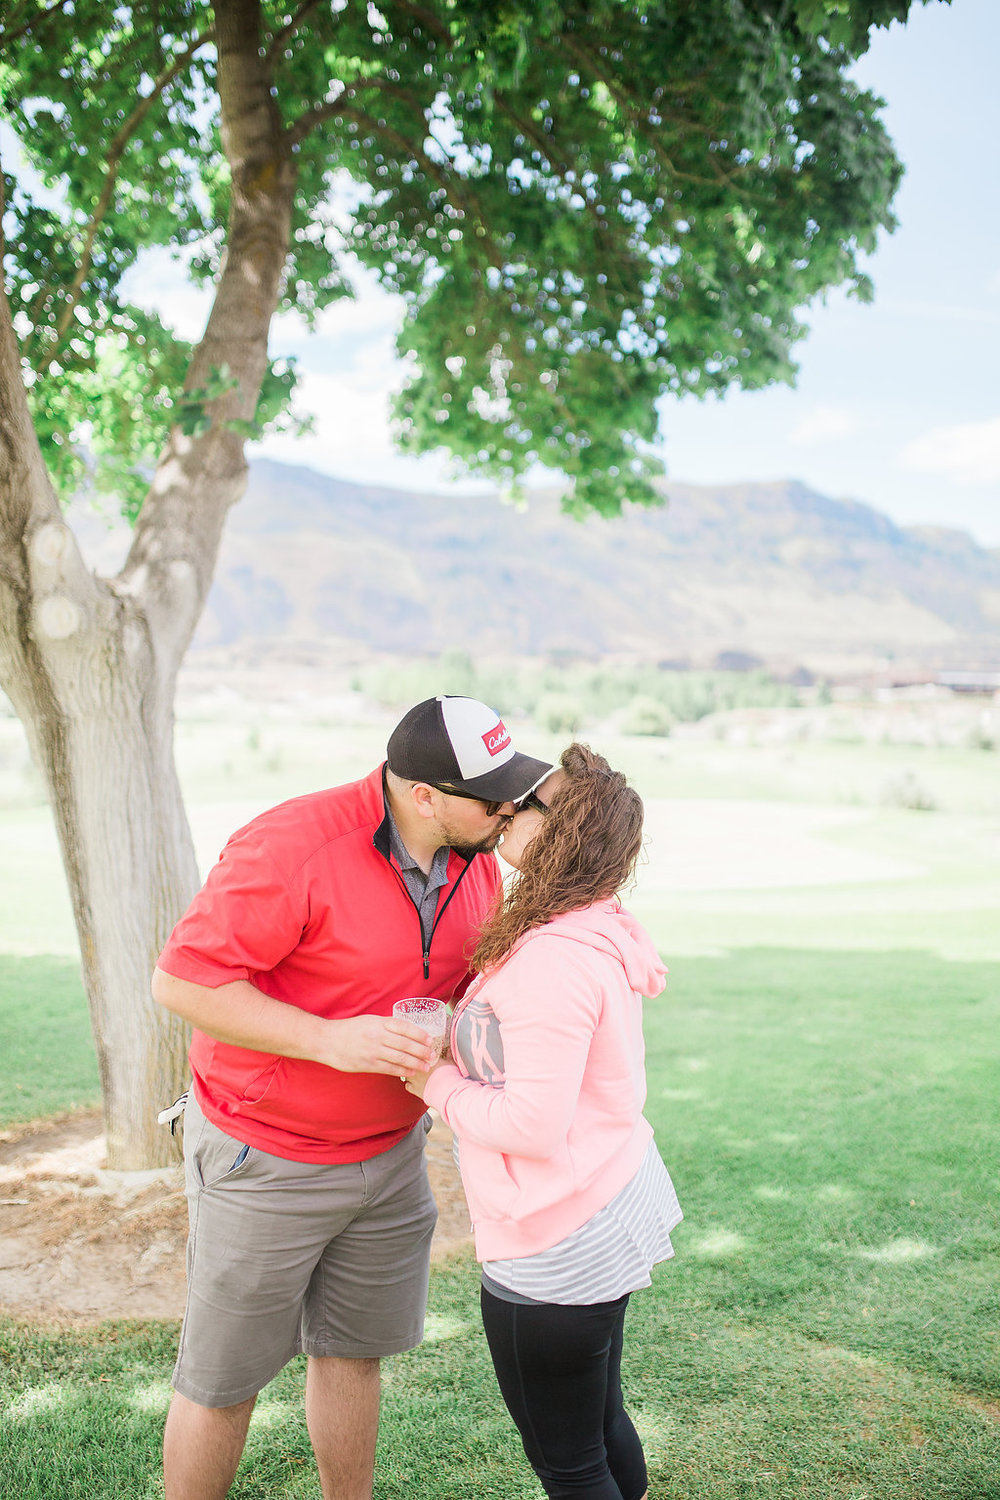 Golf Course Proposal | 9th Hole Proposal | Golf Course Photo Session | Beautiful Engagement Session | Seattle Wedding Photographer | Surprise Proposal | Kiss Shot